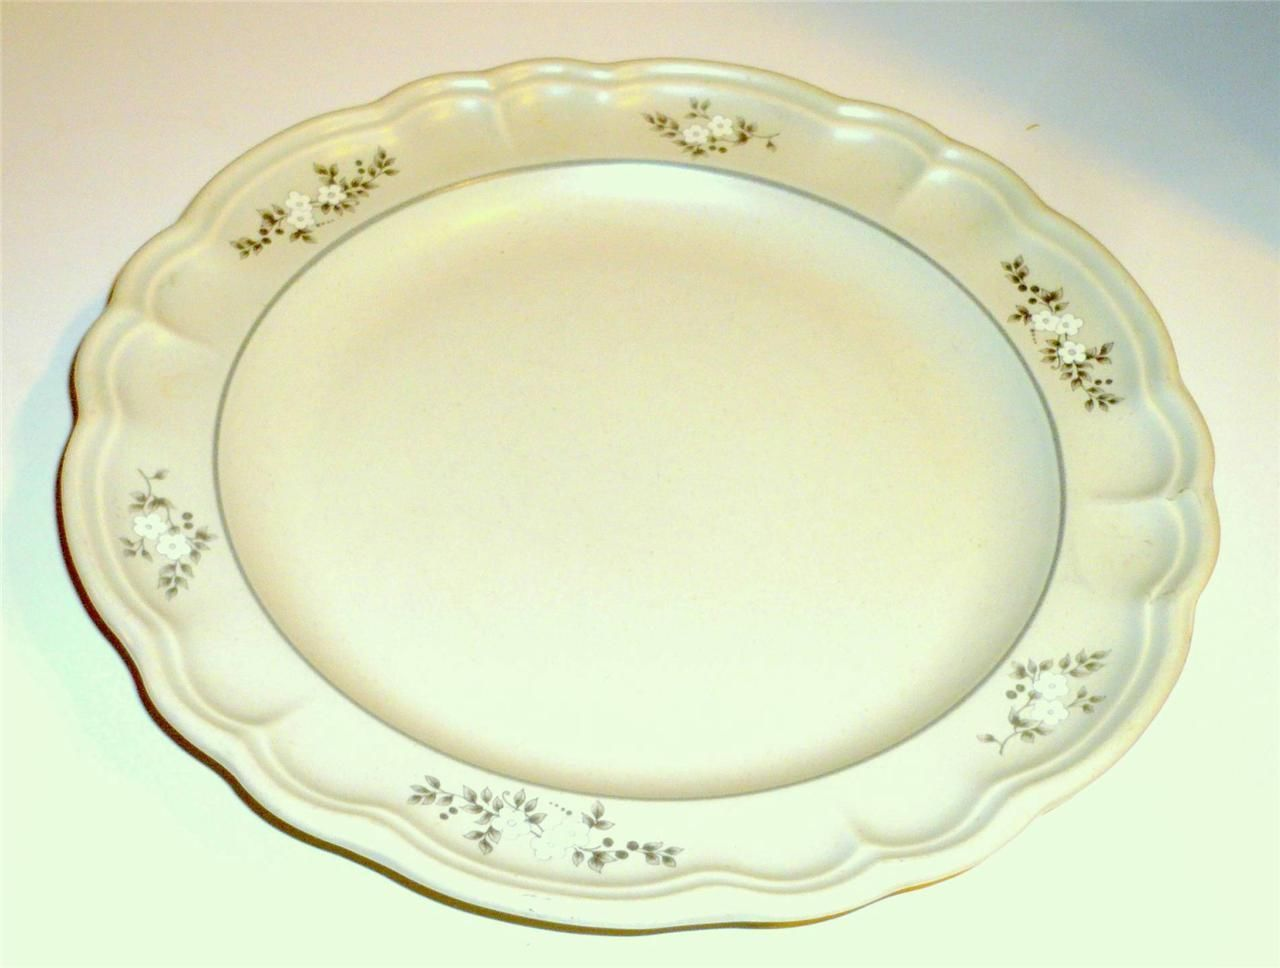 Pfaltzgraff Replacement Dinner Plate, and 50 similar items